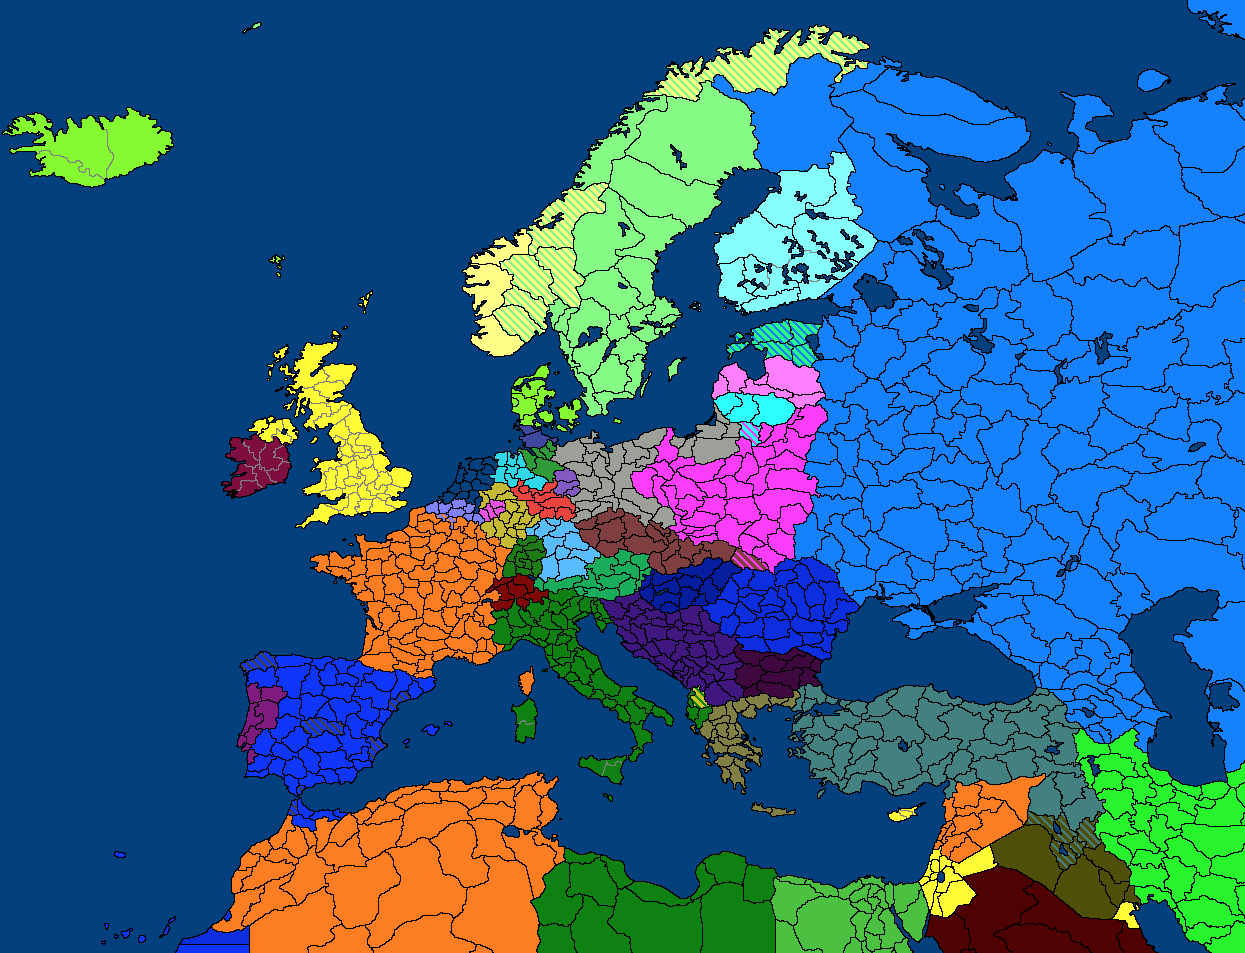 Alternate world war ii map game thefutureofeuropes wiki fandom the embargoes continue but france looks towards the americas for trading pacts and their economy slowly rises france also diplomatically annexes the tiny gumiabroncs Gallery